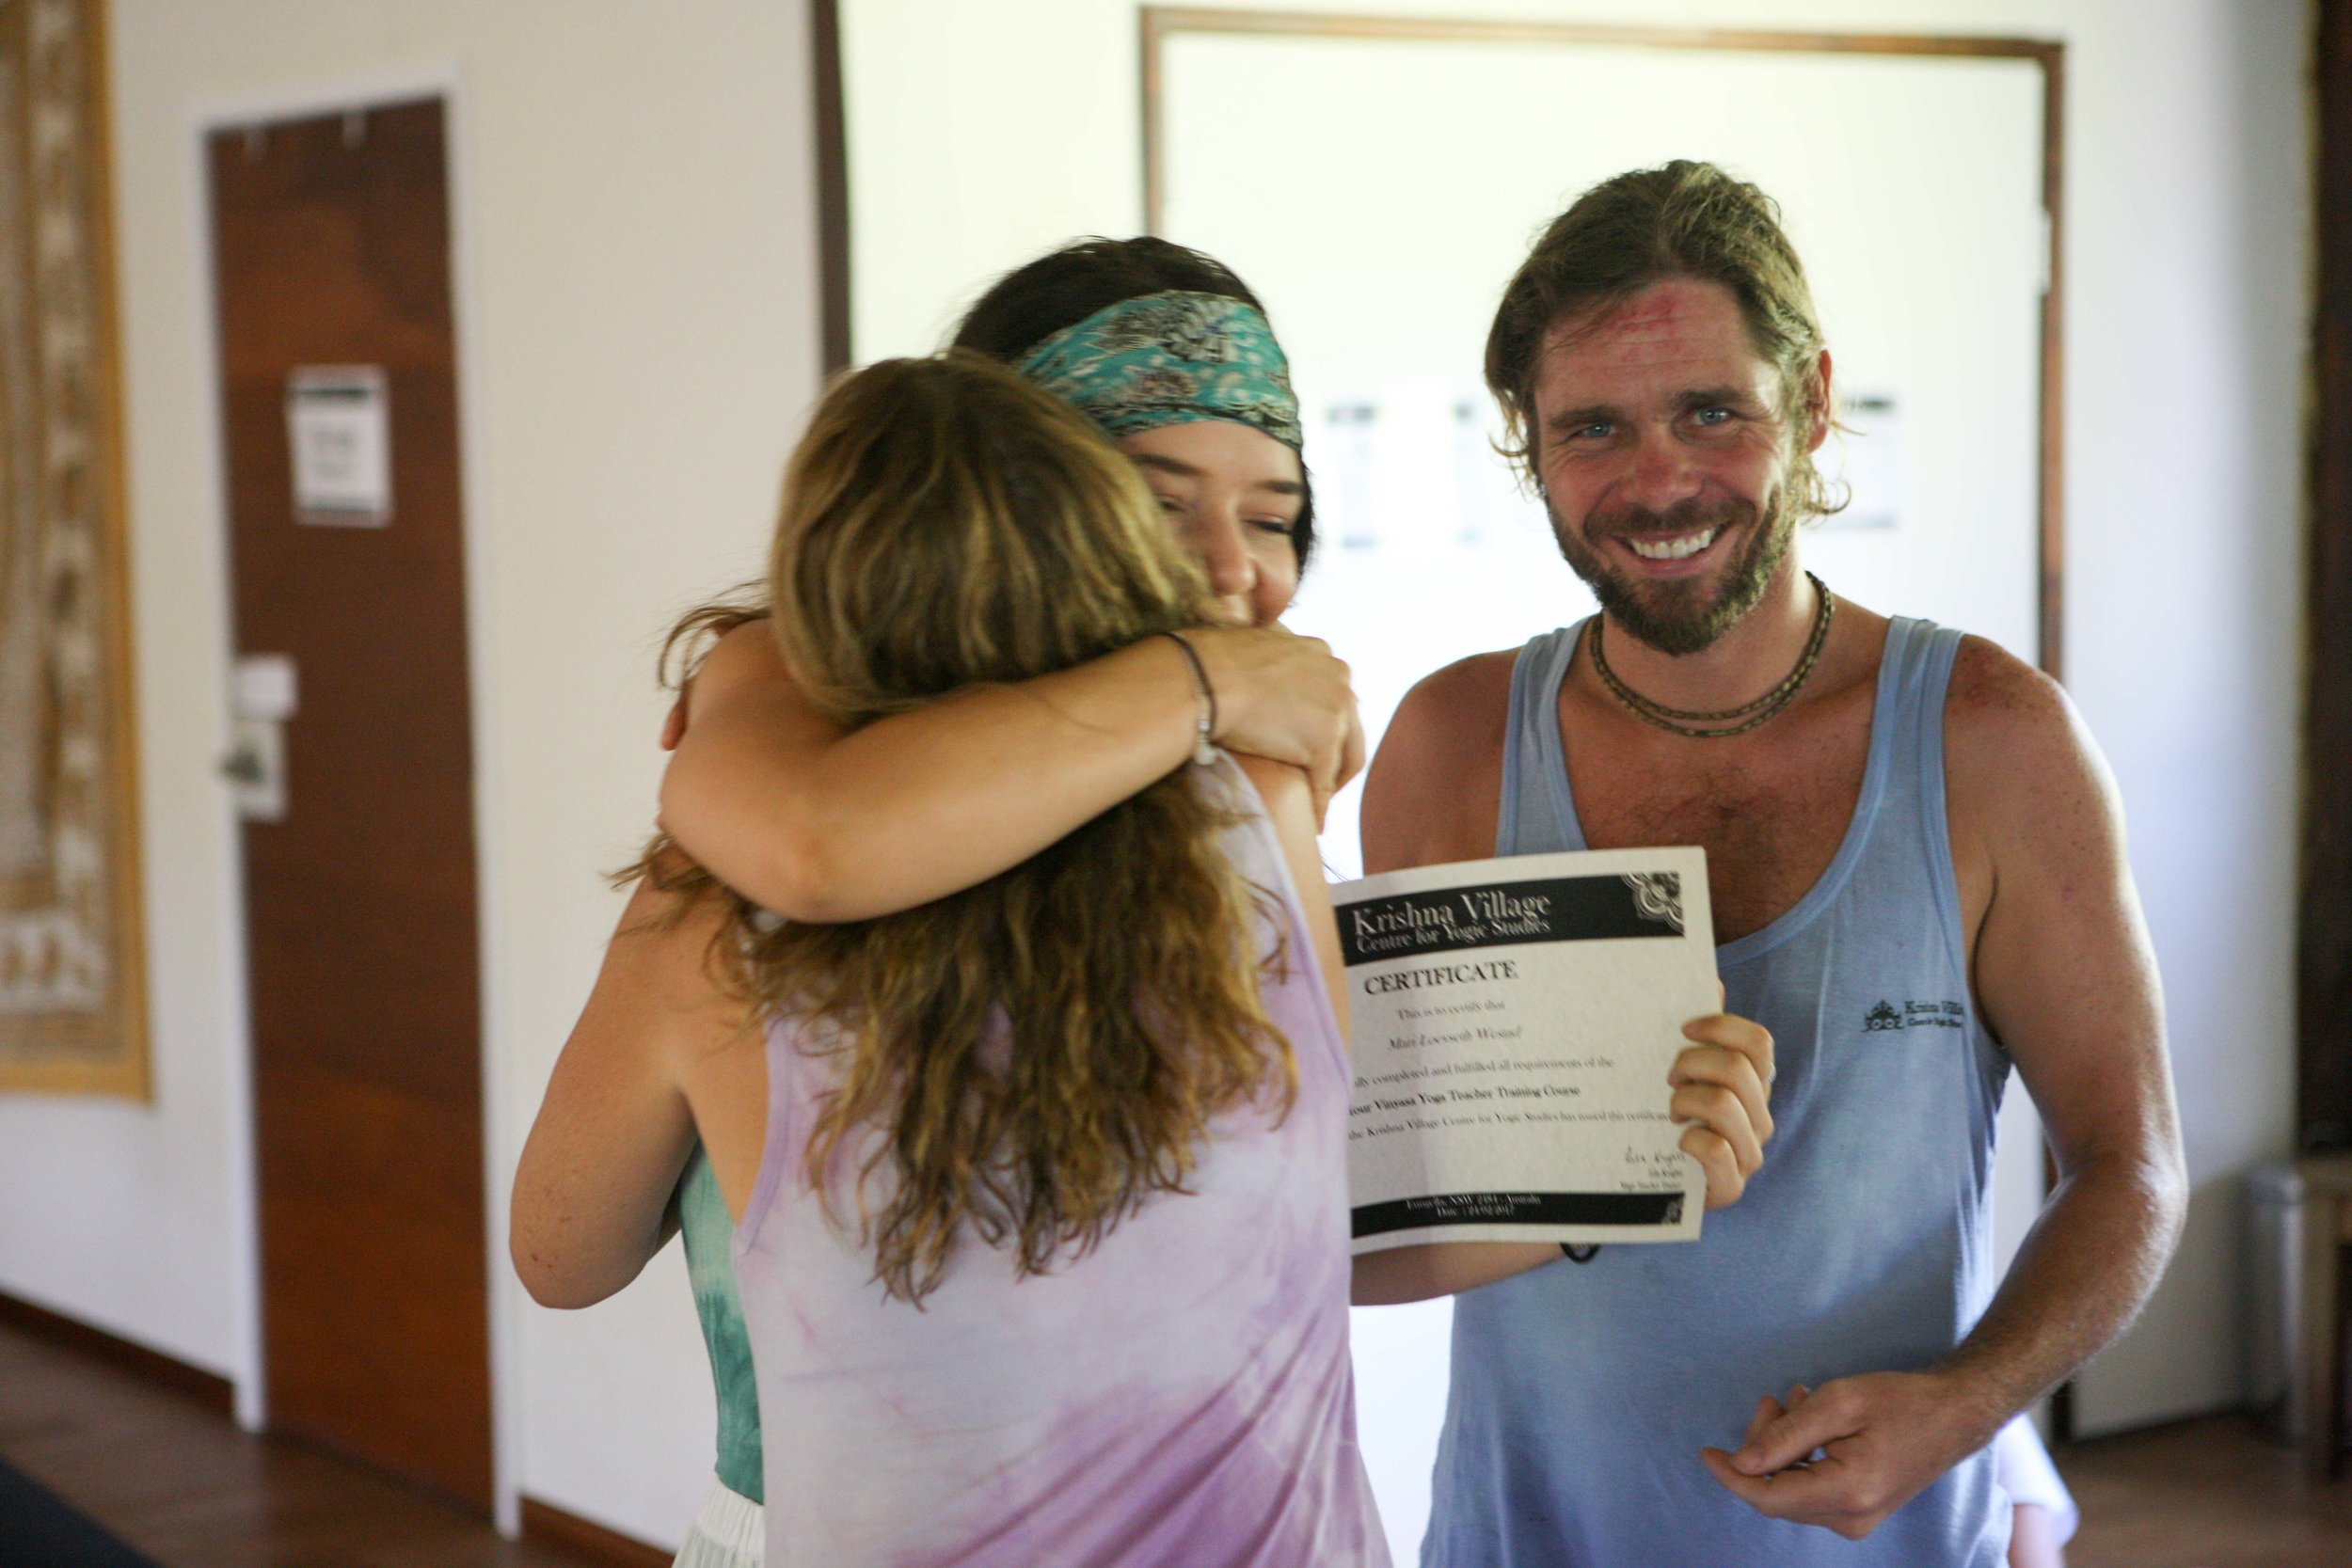 A very proud and happy moment receiving my yoga teacher certificate.